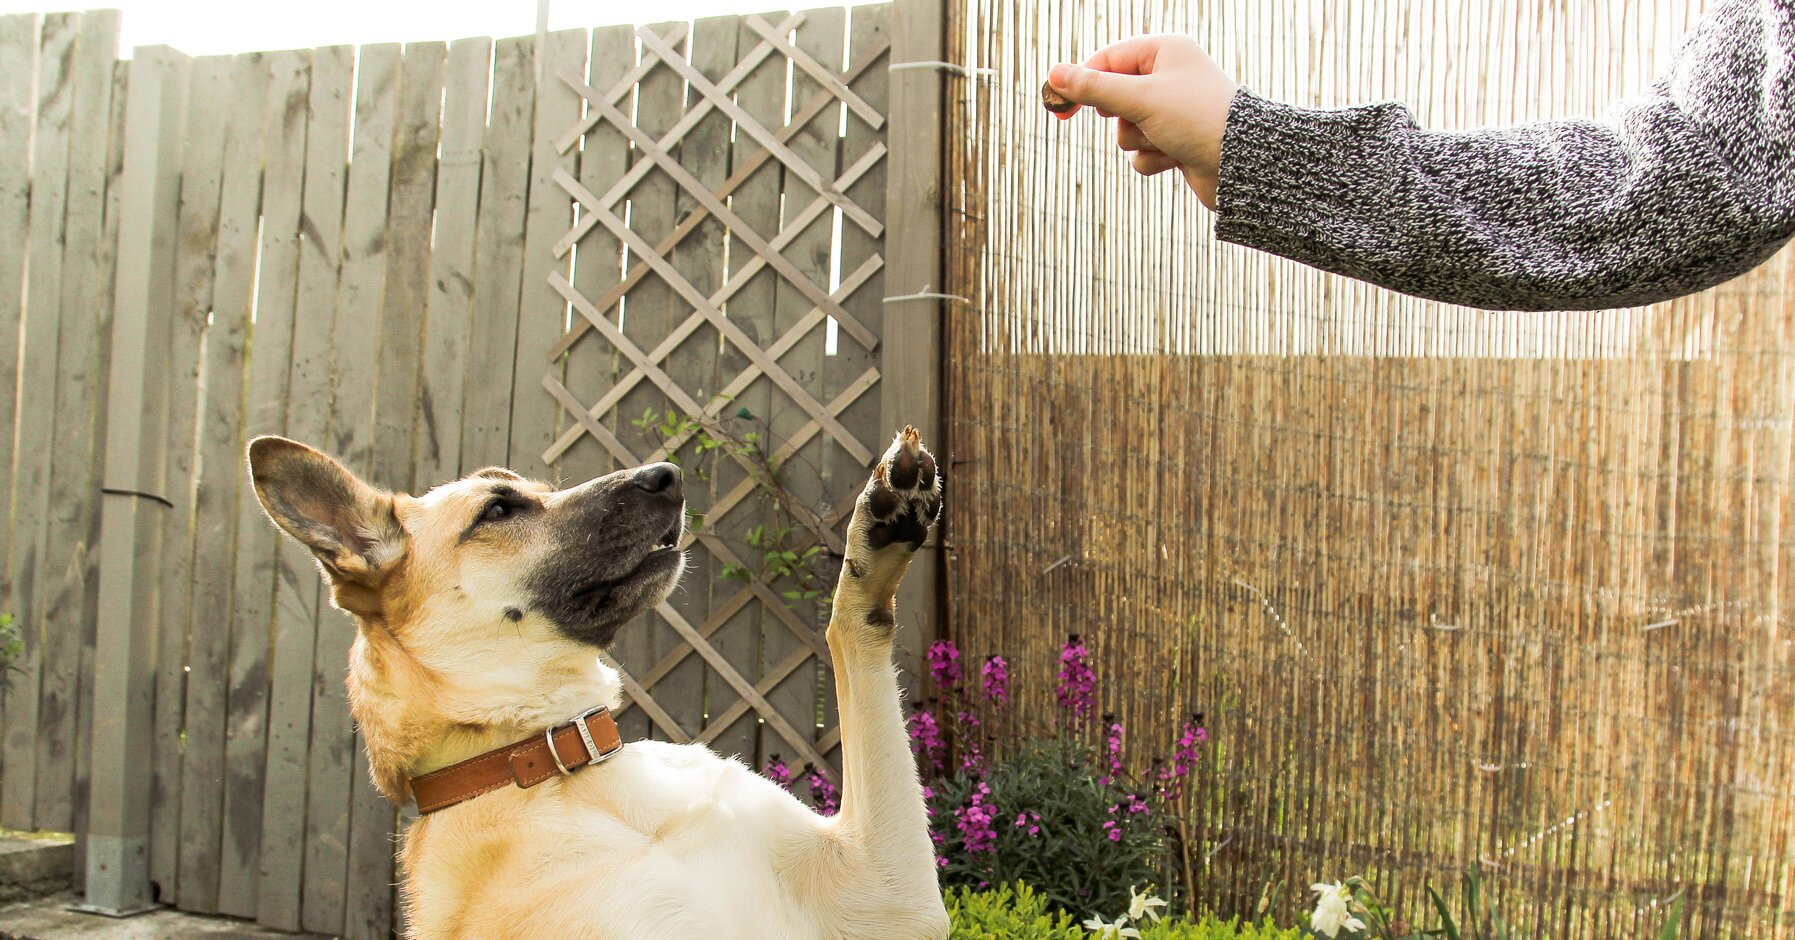 Five Basic Commands That Every Dog Should Learn